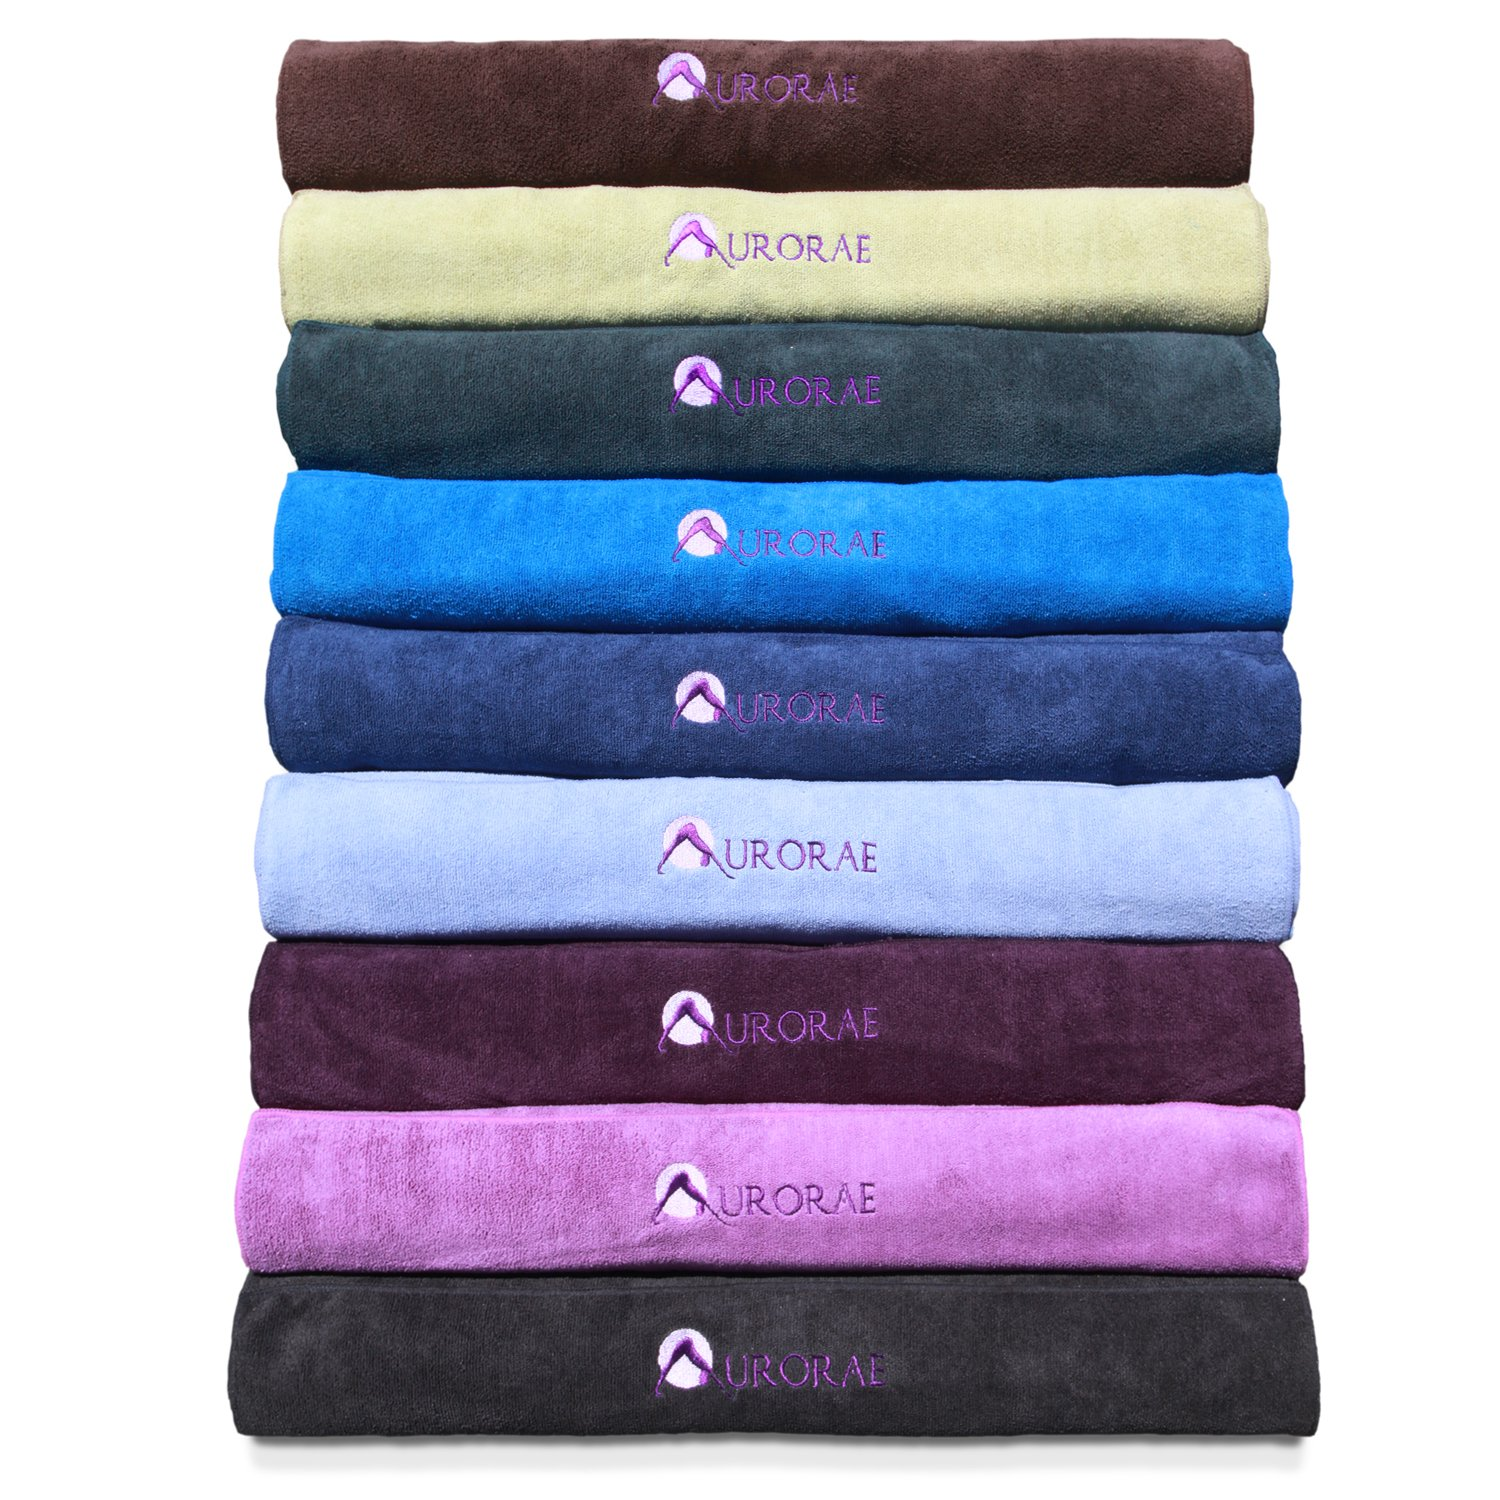 Aurorae's Slip Free Yoga Mat sized Towel. Great for Hot/Active Yoga. Eco Safe, Hygienic, Super Absorbent Multi-purpose Lush Micro-fiber material. Sport Size 30″ x 20″, Long Mat Size 72″x24″, 9 New Beautiful Colors that will Match/Coordinate with our Mats. 2 Year Full Guarantee